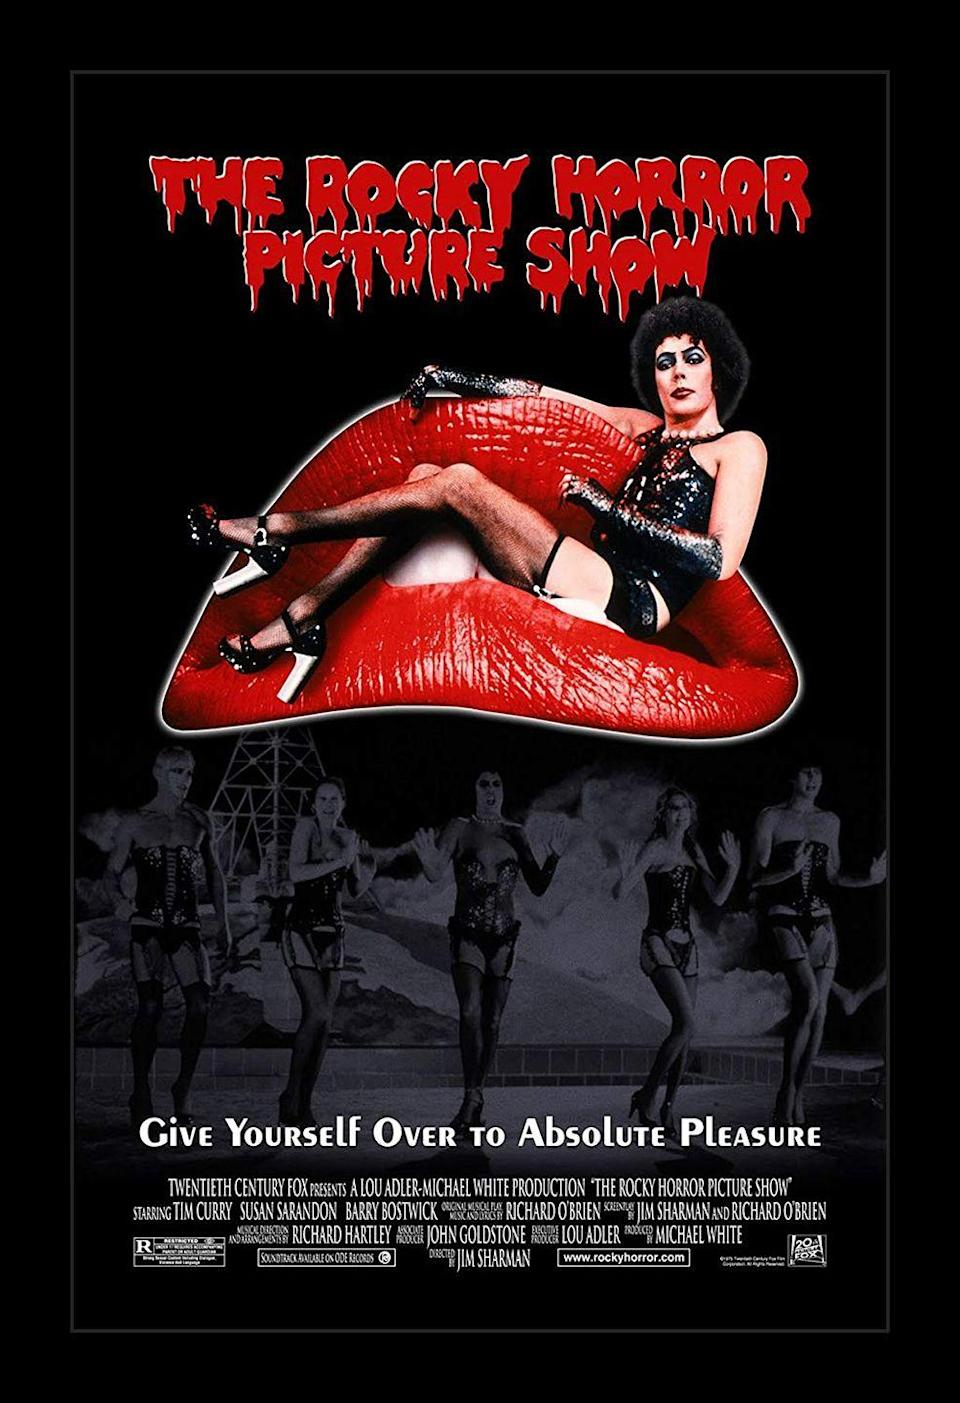 """<p>There are some dedicated RHPS fans out there who may be ready to argue that this should've been at the top of the list. Over 30 years since it's initial release, audiences still pack theaters for midnight screenings across the country. Folks can't get enough of Tim Curry as Dr. Frank-N-Furter putting Brad (Barry Bostwick) and Janet (Susan Sarandon) through a night of insanity when all they needed was a tow truck. It may be fun to watch from the comfort of your couch, but it's an experience to see it in a theater with people who can act out every scene.</p><p><a class=""""link rapid-noclick-resp"""" href=""""https://www.amazon.com/Rocky-Horror-Picture-Show/dp/B001HLZMUE/ref=sr_1_1?tag=syn-yahoo-20&ascsubtag=%5Bartid%7C10072.g.27734413%5Bsrc%7Cyahoo-us"""" rel=""""nofollow noopener"""" target=""""_blank"""" data-ylk=""""slk:WATCH NOW"""">WATCH NOW</a></p>"""